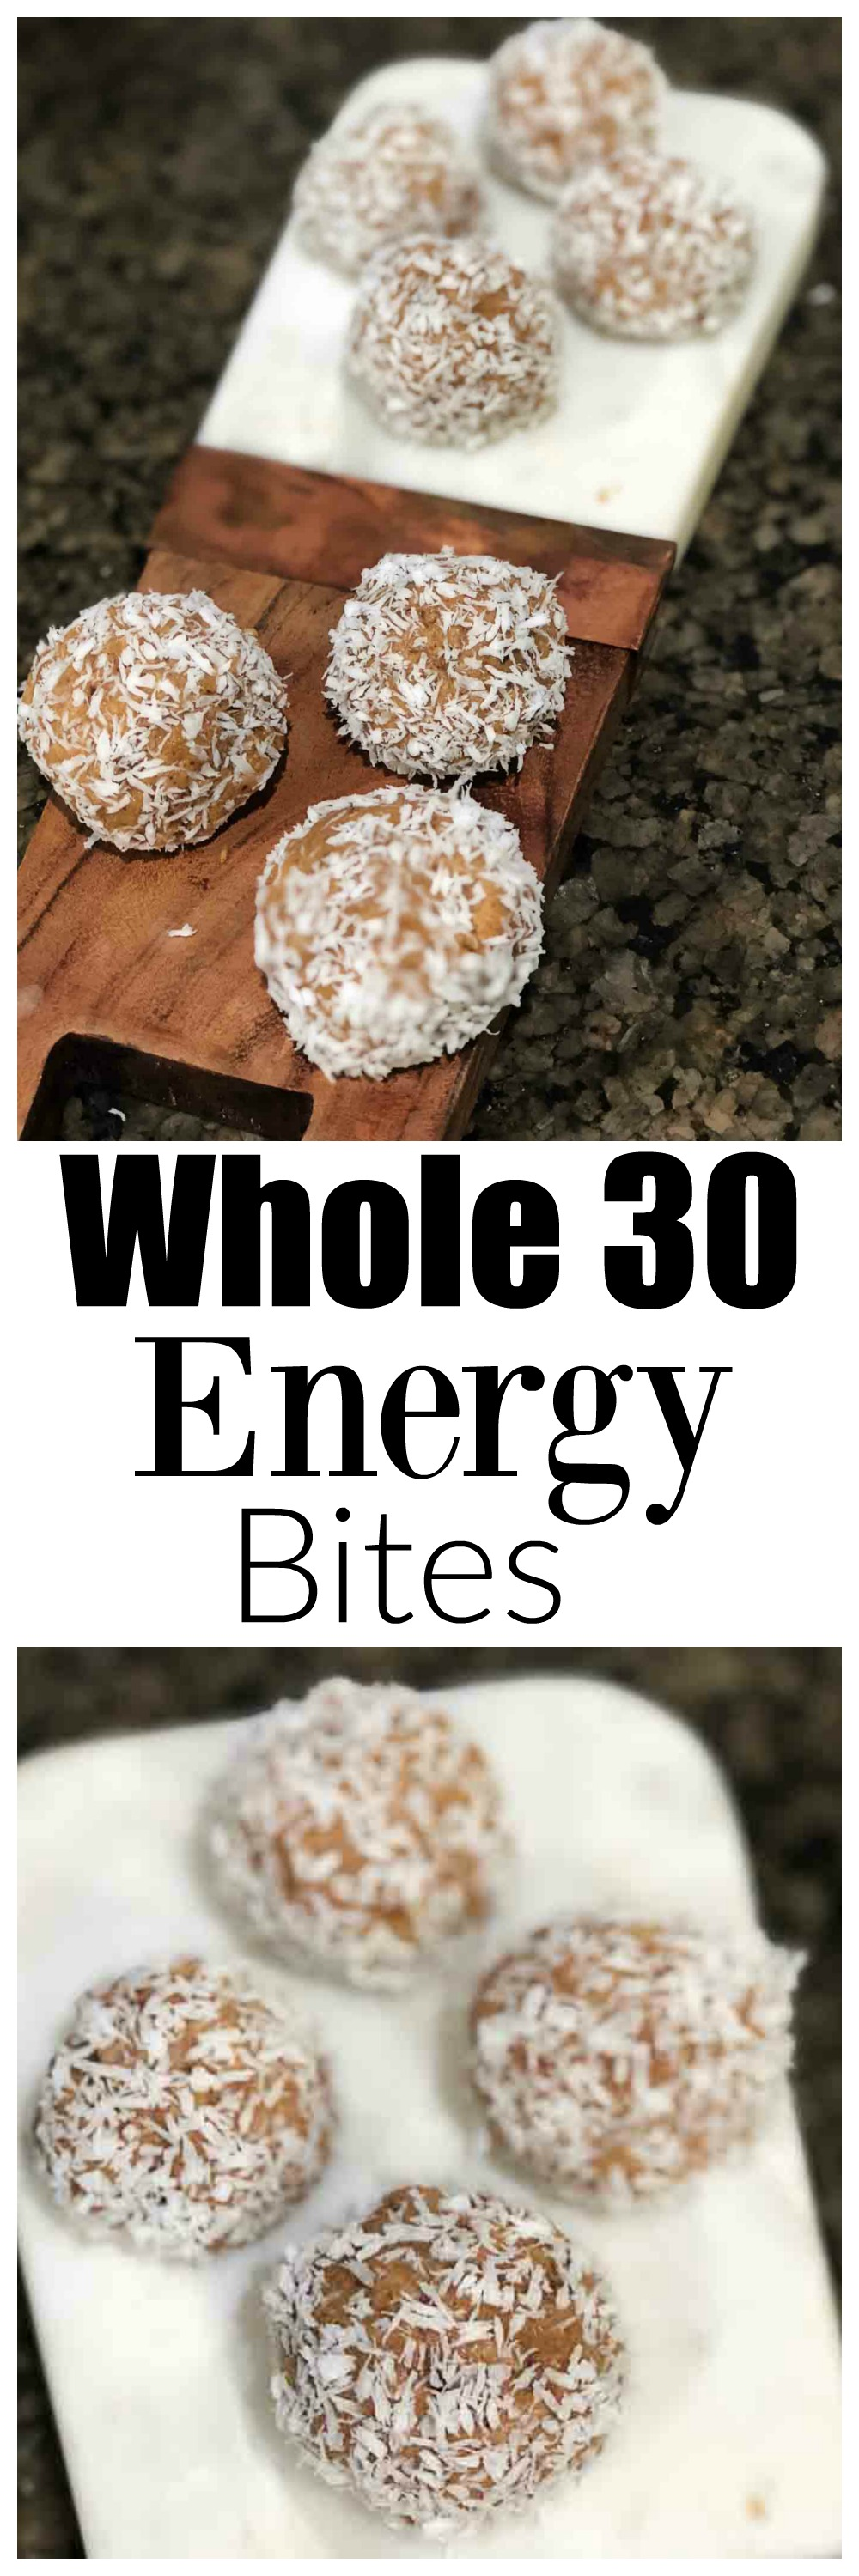 whole30 energy bites - Whole30 Snacks: Delicious Easy Energy Bites featured by top Atlanta fitness blog Happily Hughes